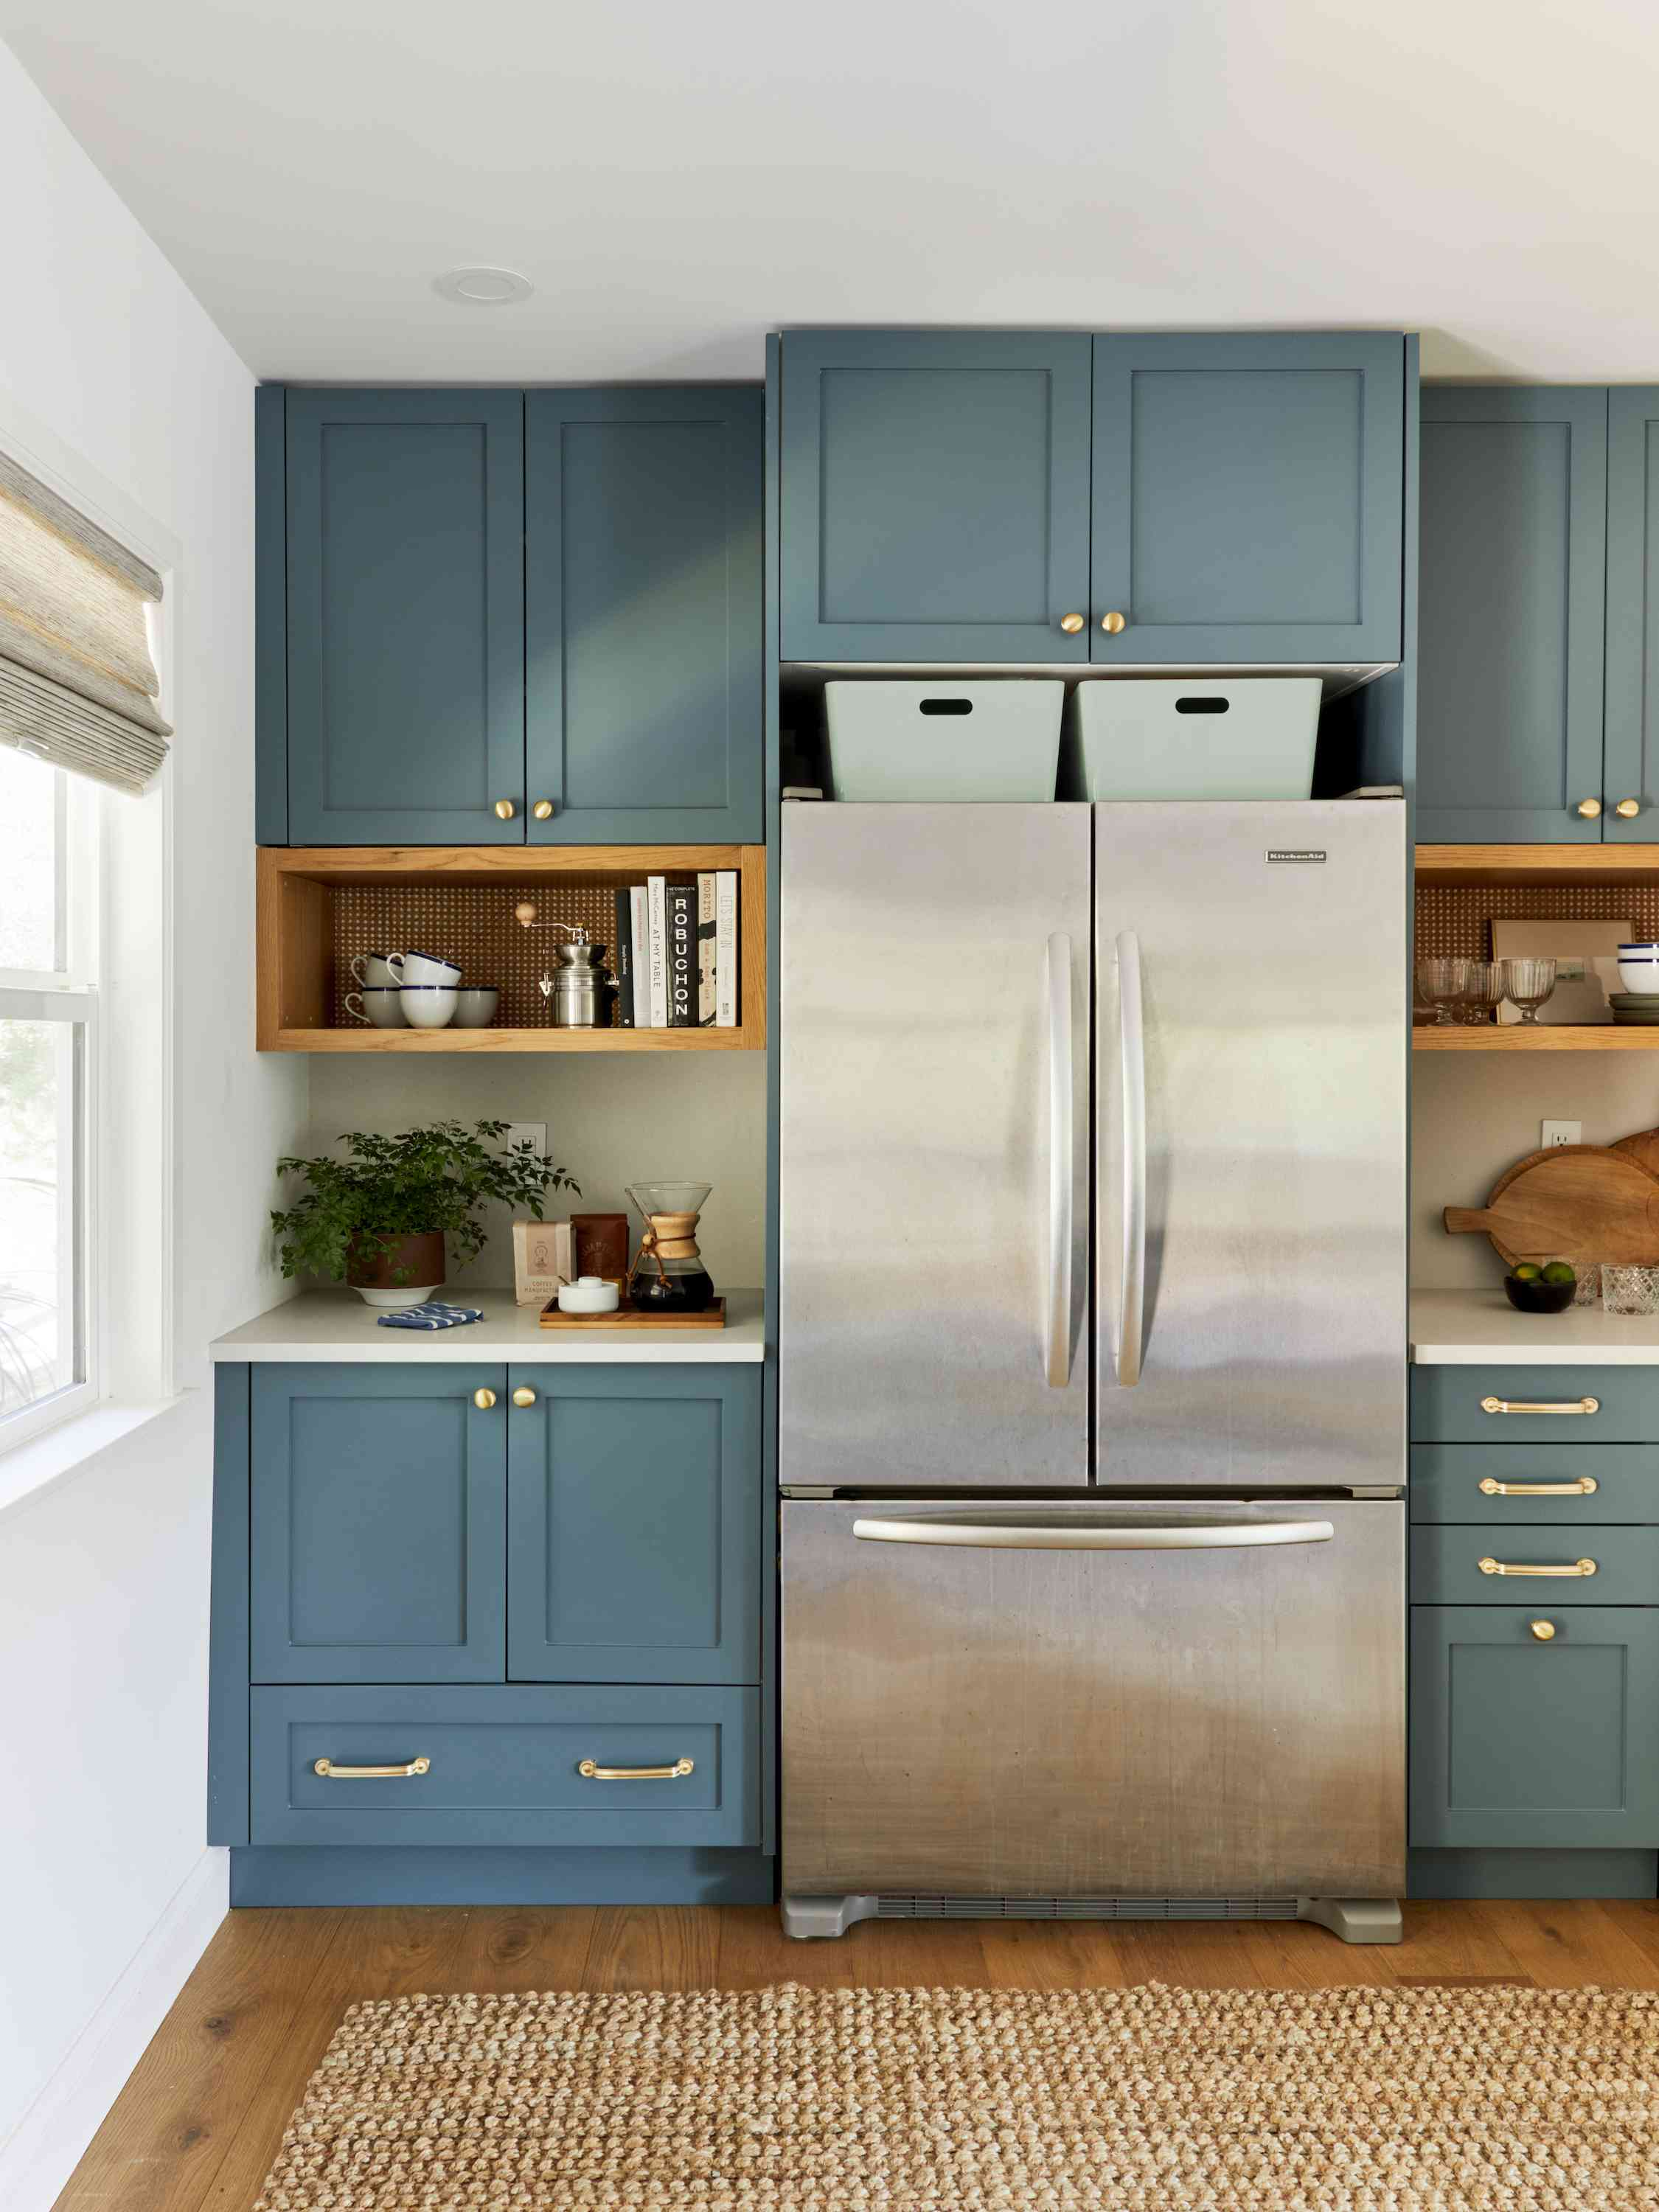 Stainless steel fridge with two drink cubby areas next to it.